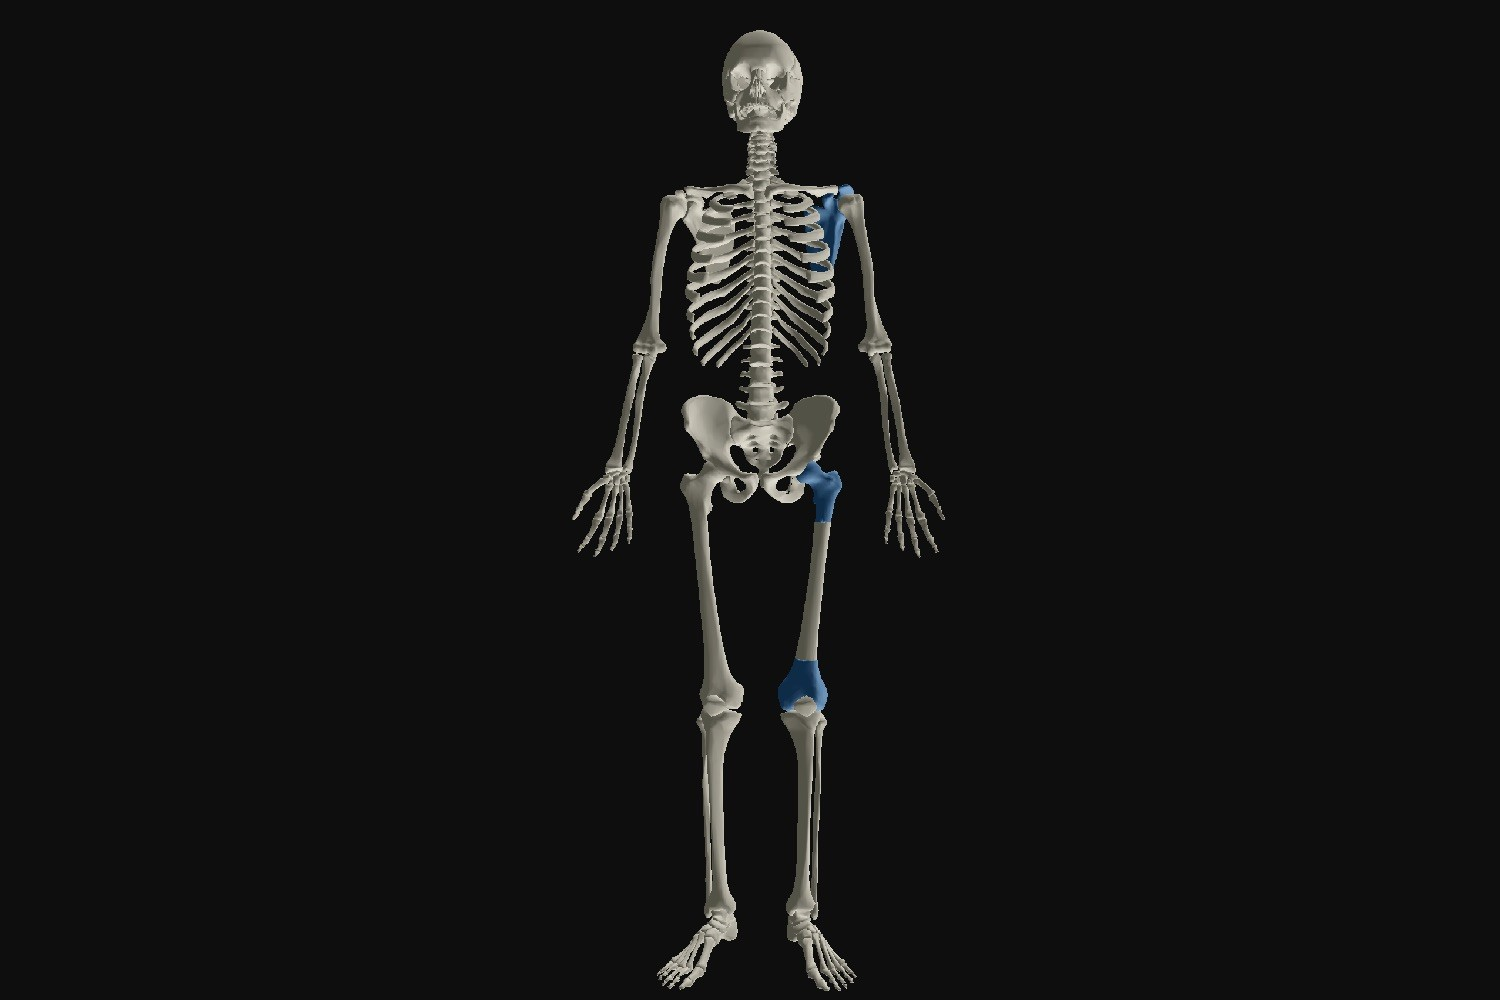 3D-scanned 'trillennium man' predicts what evolution has in store for us